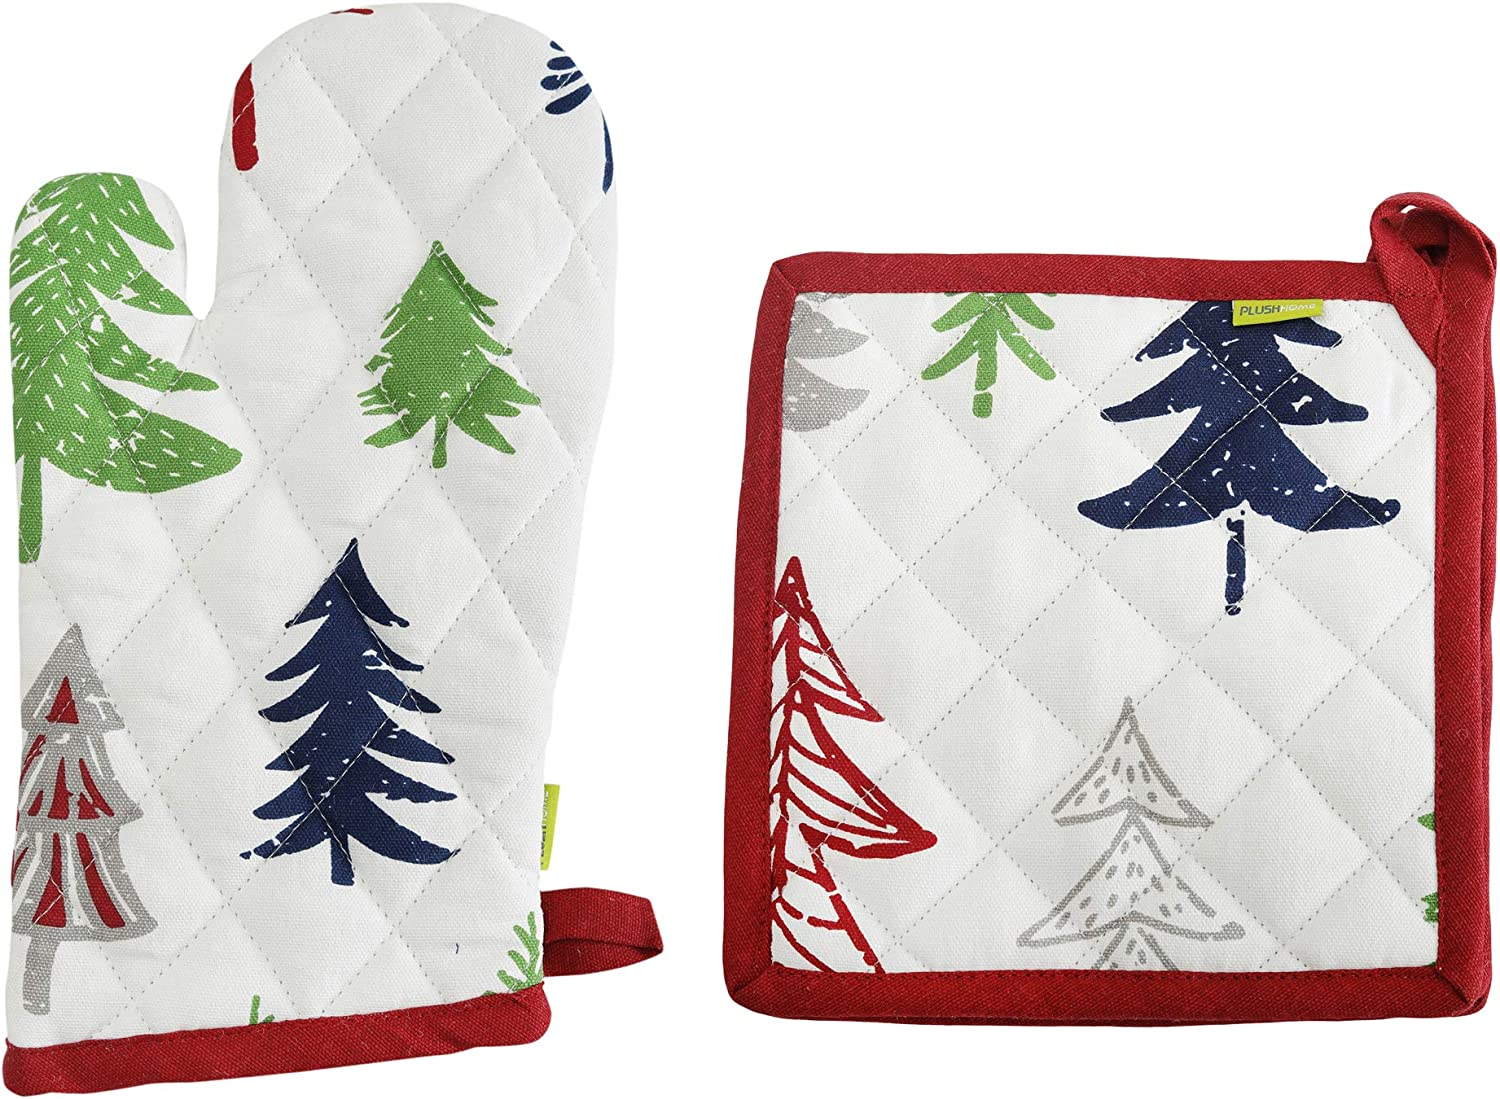 """Plush Home Pot Holder and Oven Mitt Set - Pine Trees Design, 100% Cotton, Set of 1 Oven Mitten of Size 7"""" X12 Inch & 1 Potholder of Size 8"""" X8 Inch with high Heat Resistant Polyester Filling"""